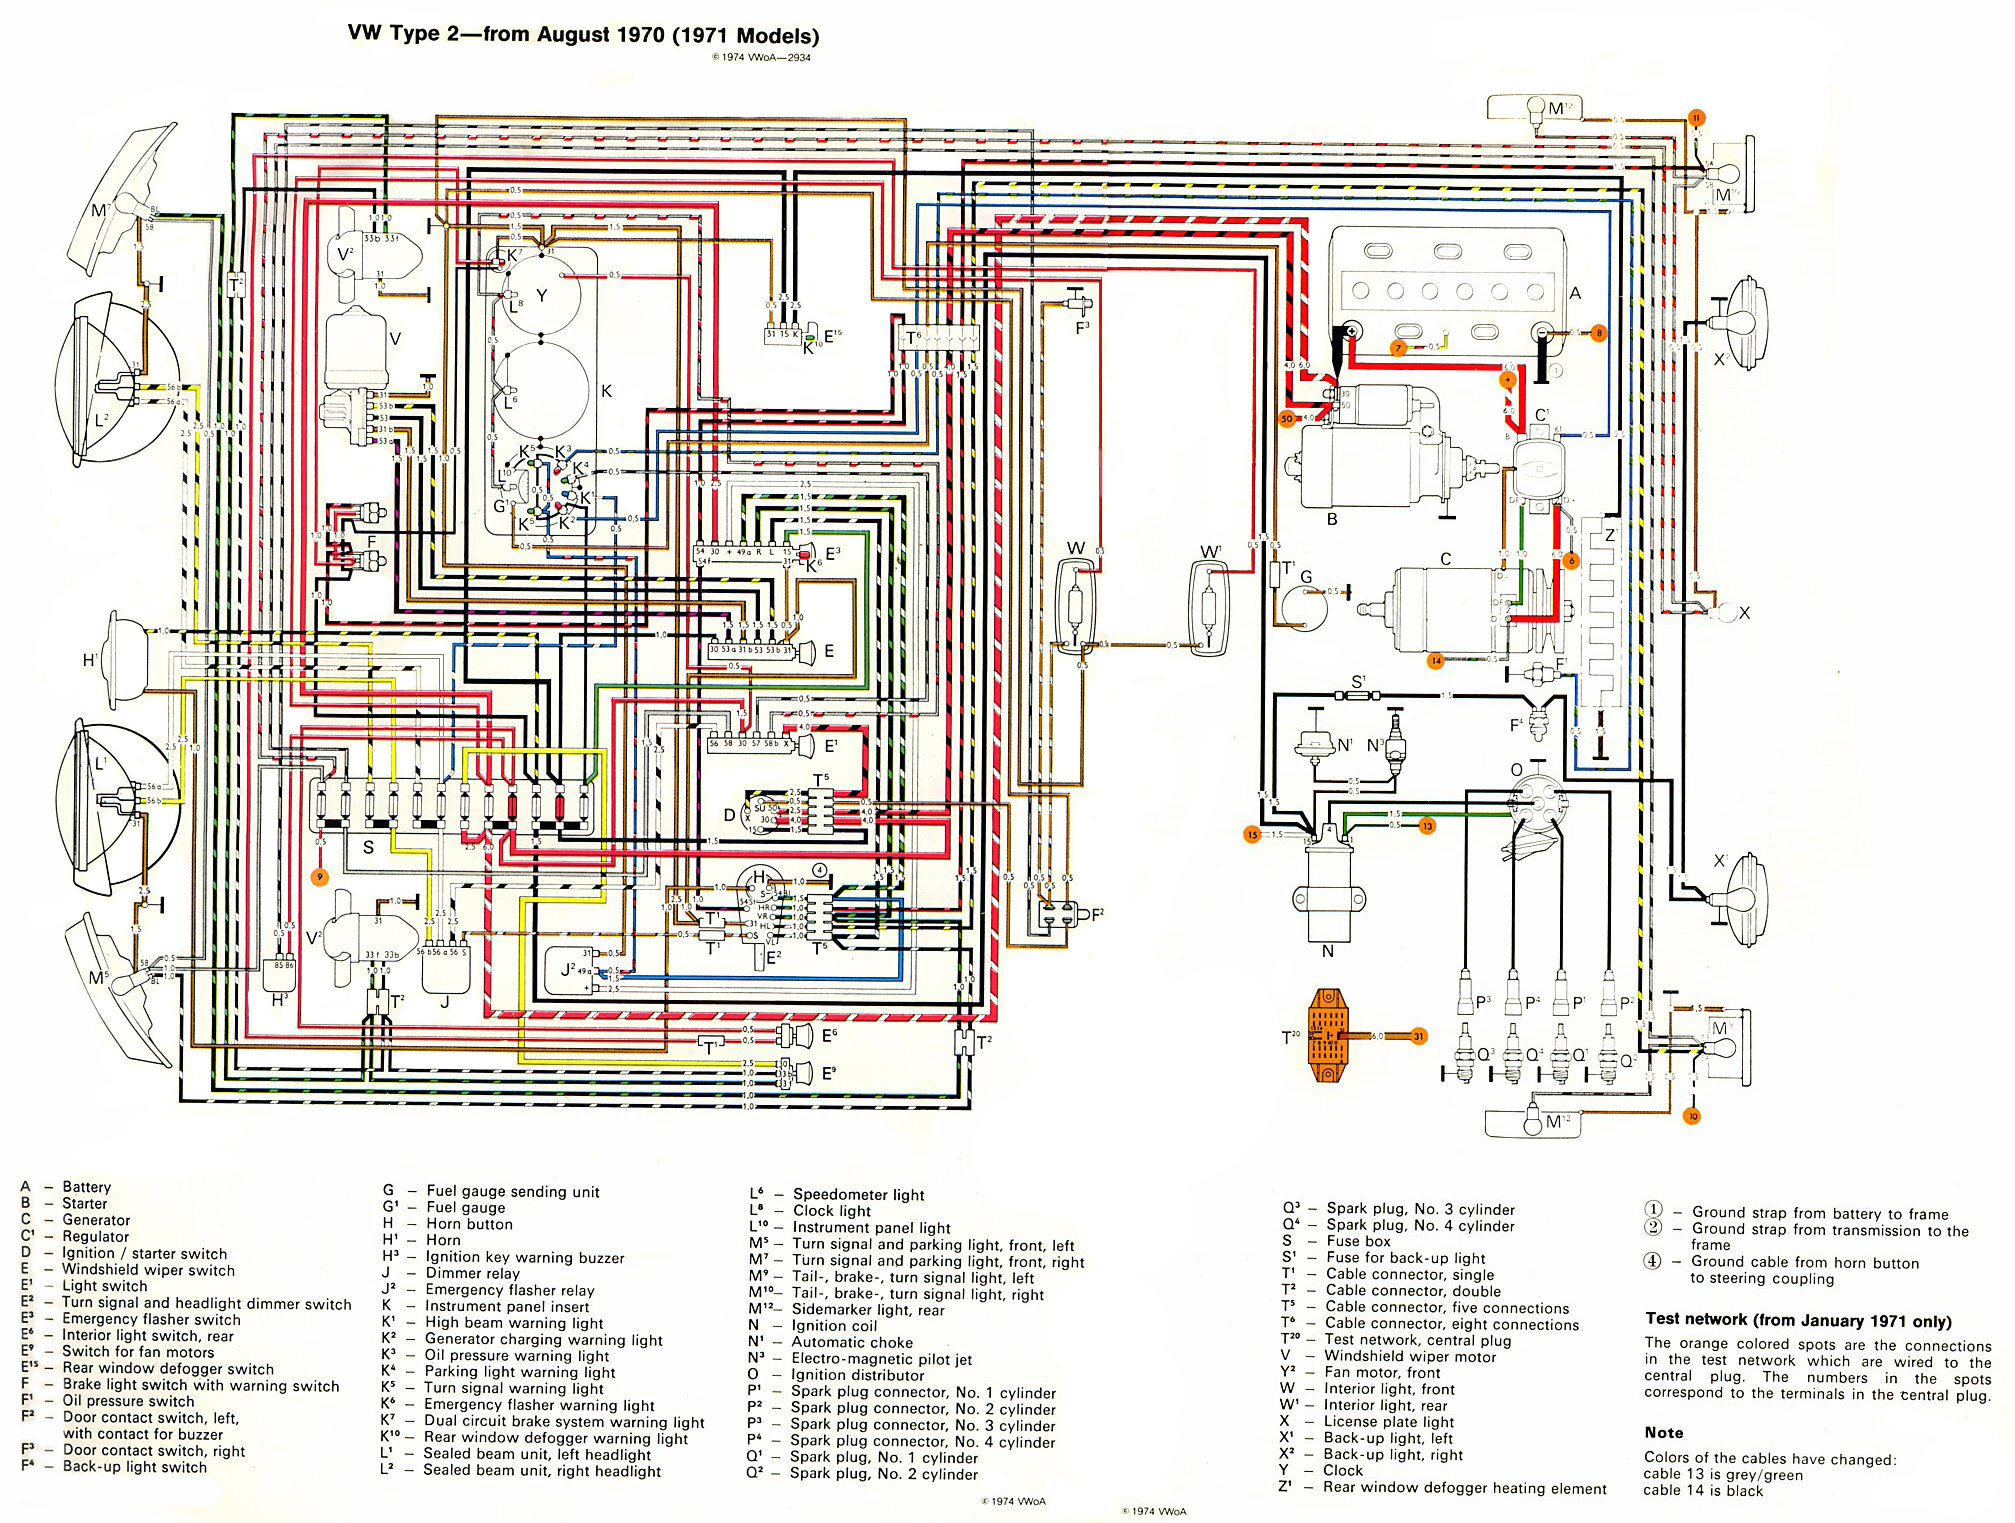 baybus_71_fixed thesamba com type 2 wiring diagrams vw golf 3 electrical wiring diagram at webbmarketing.co